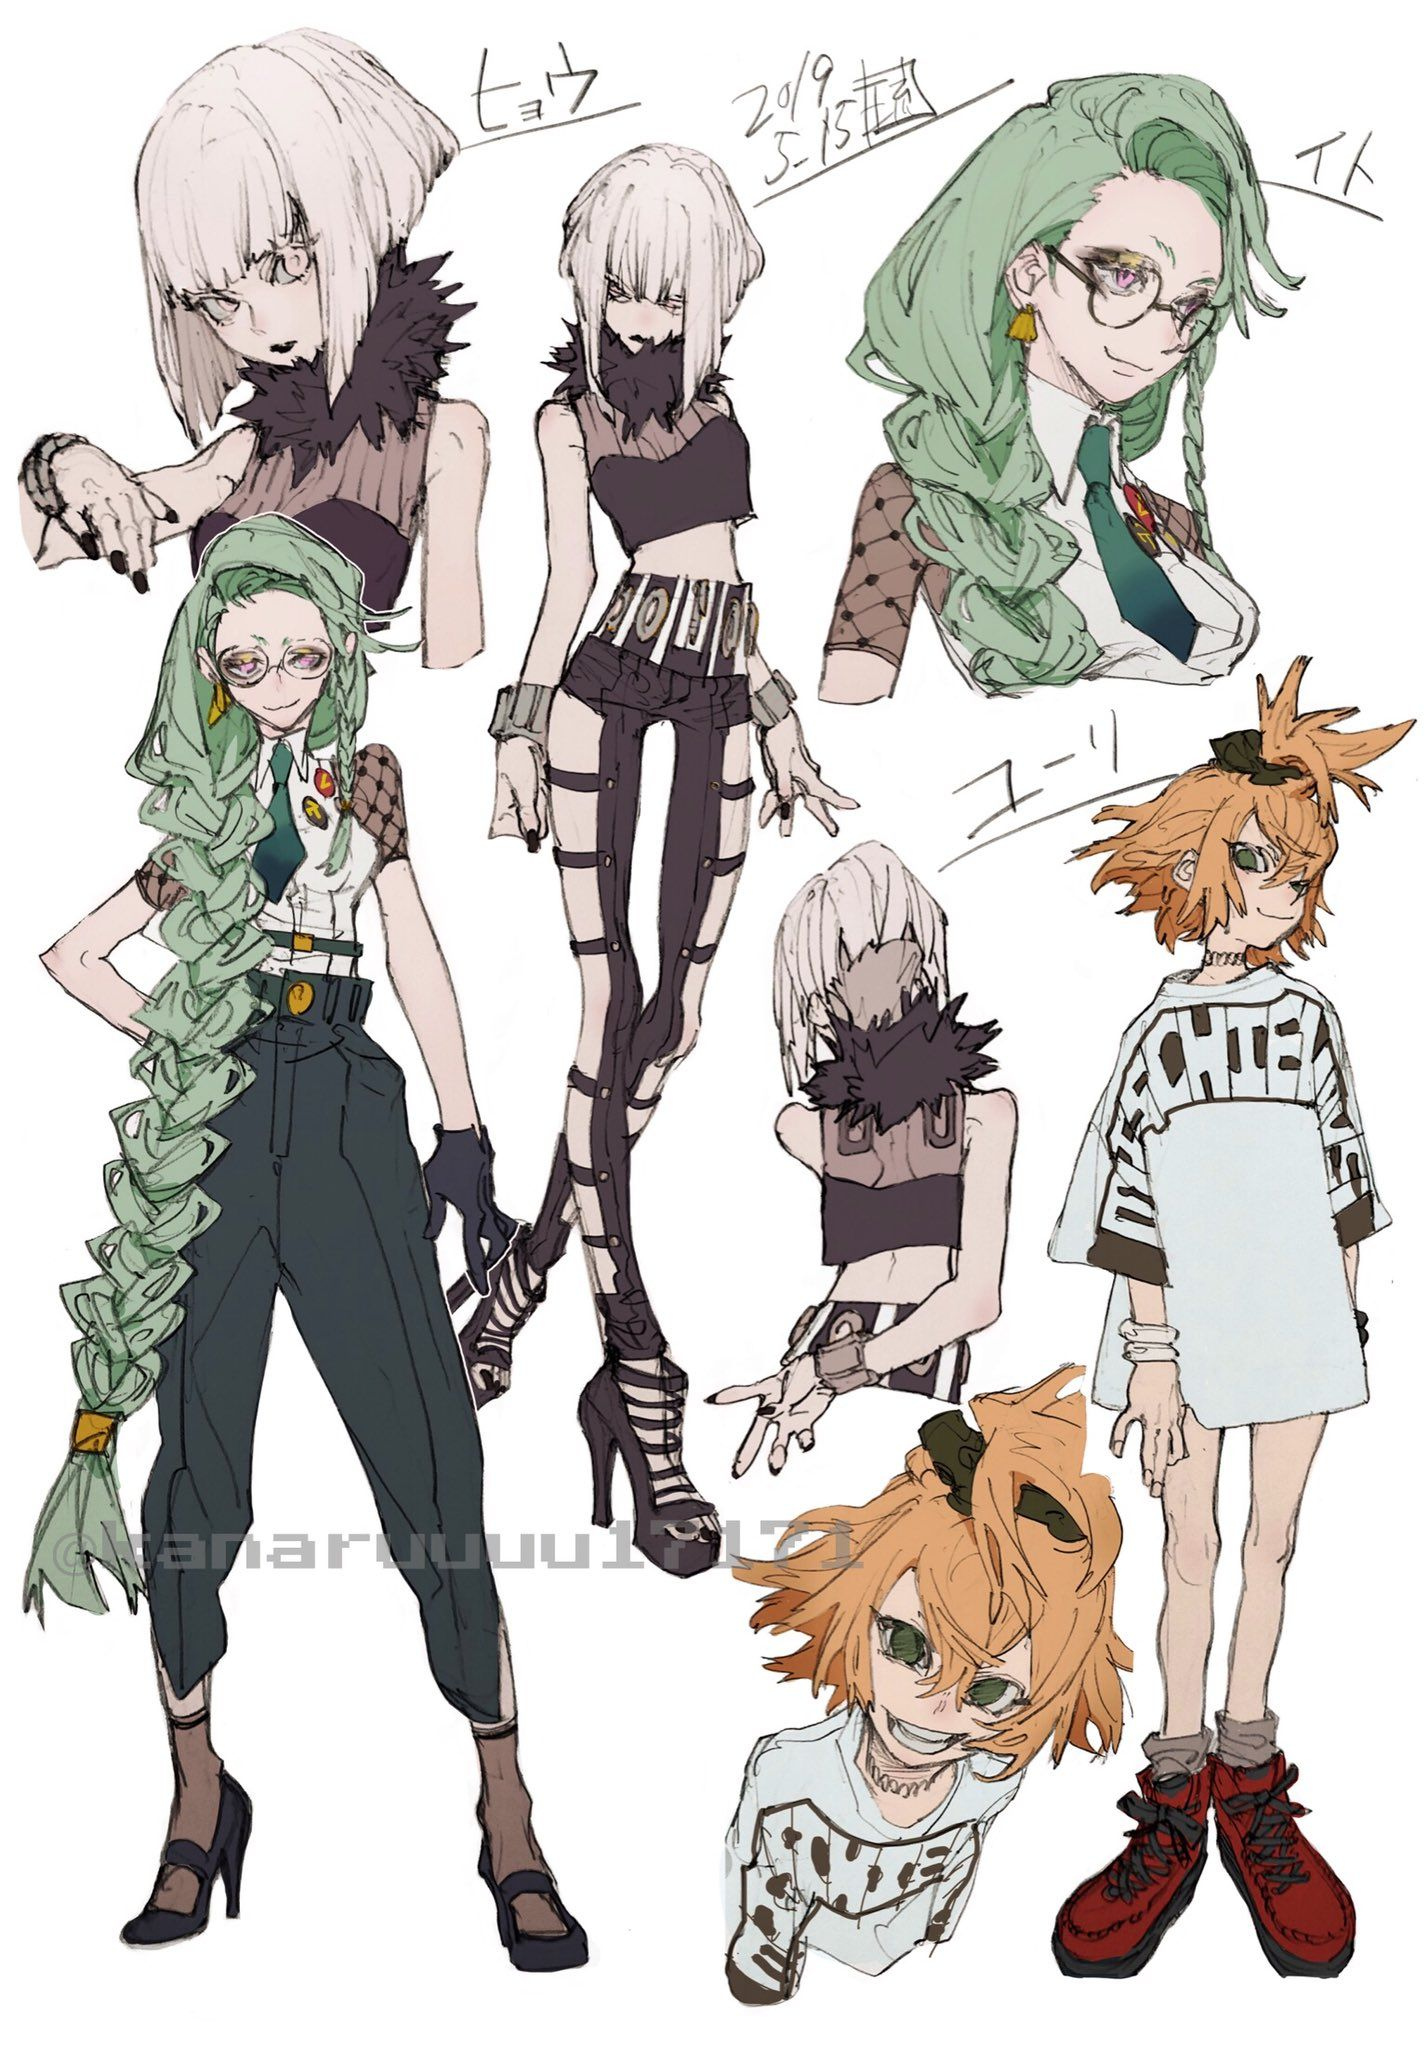 Kana琉 On Twitter Anime Character Design Character Art Character Design Inspiration